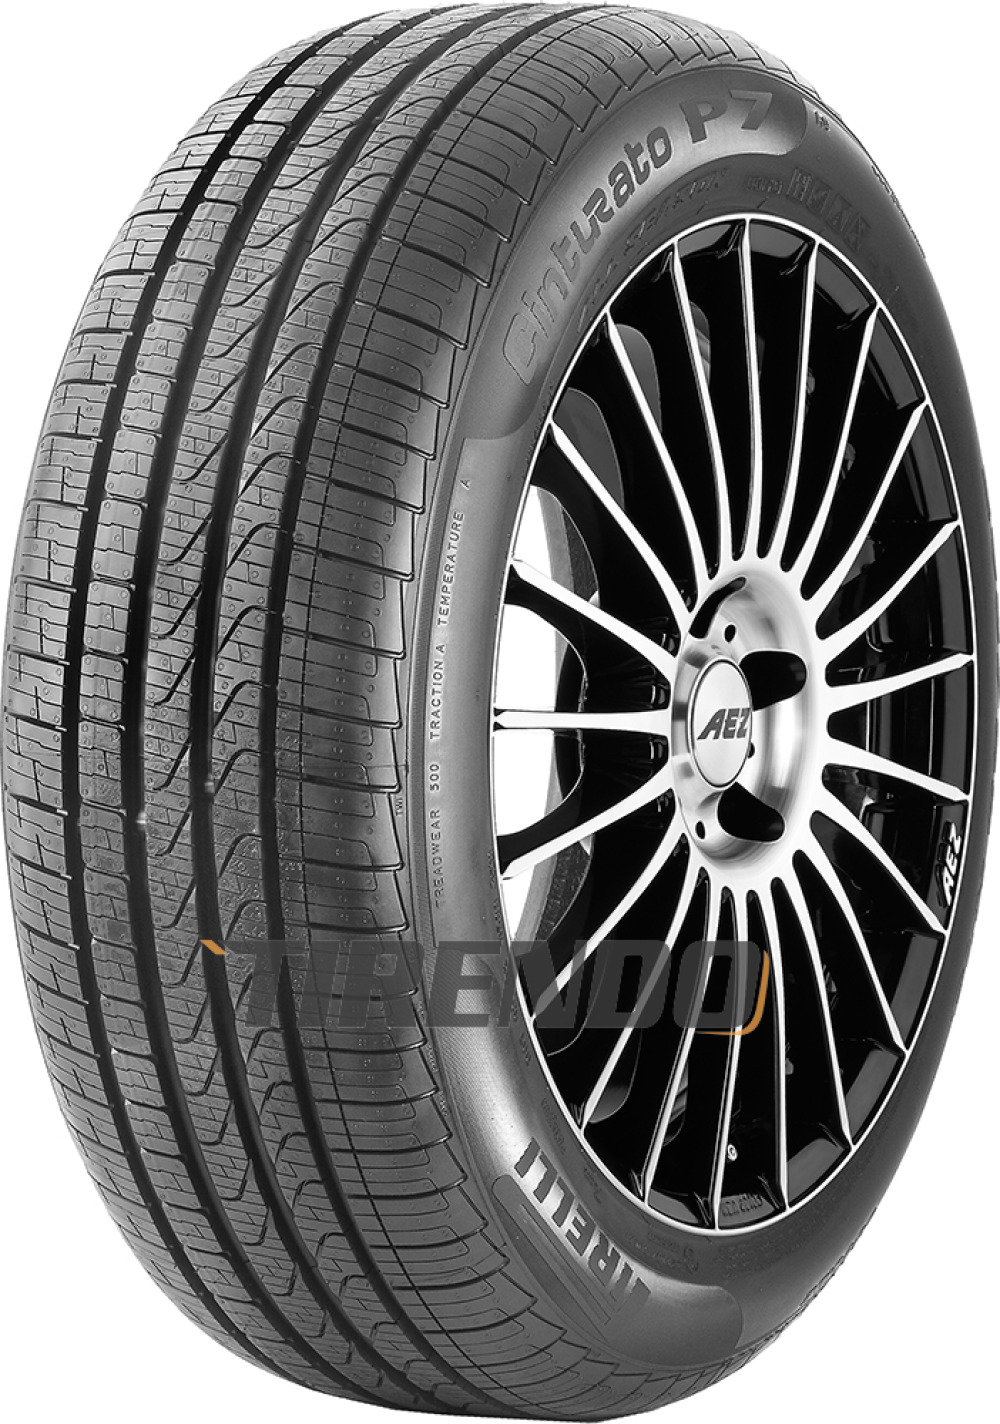 Image of 1x Pirelli Cinturato P7 All Season 225/55R17 97H *